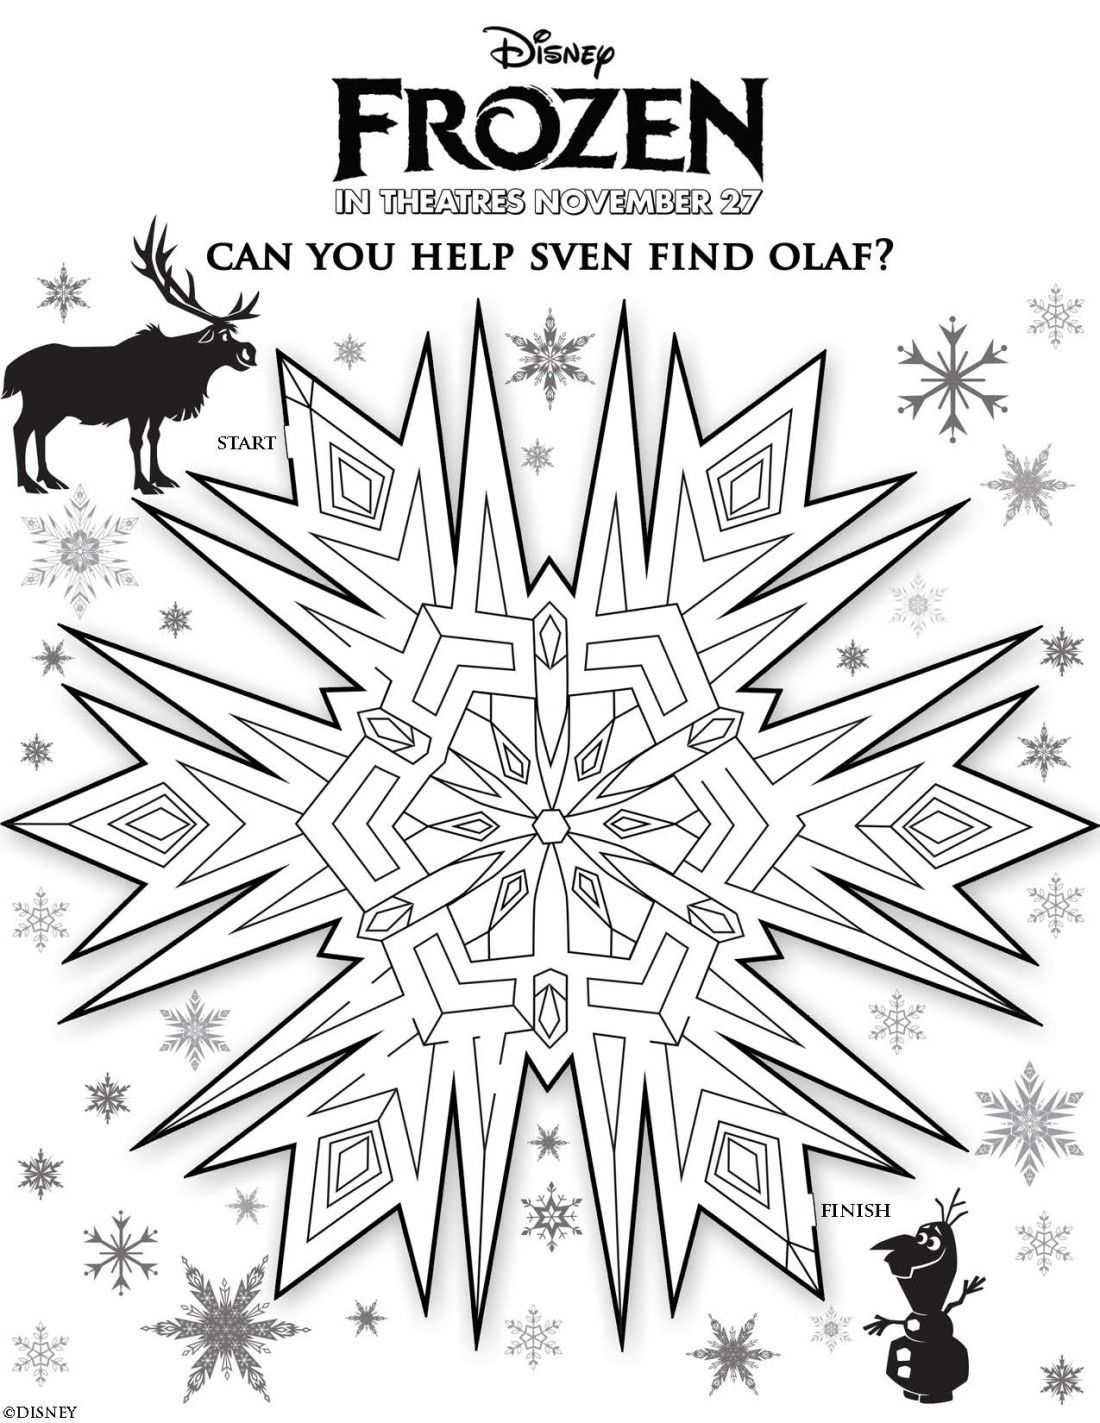 Free Disney Frozen Coloring Sheets and Activities - I am a Disney ...